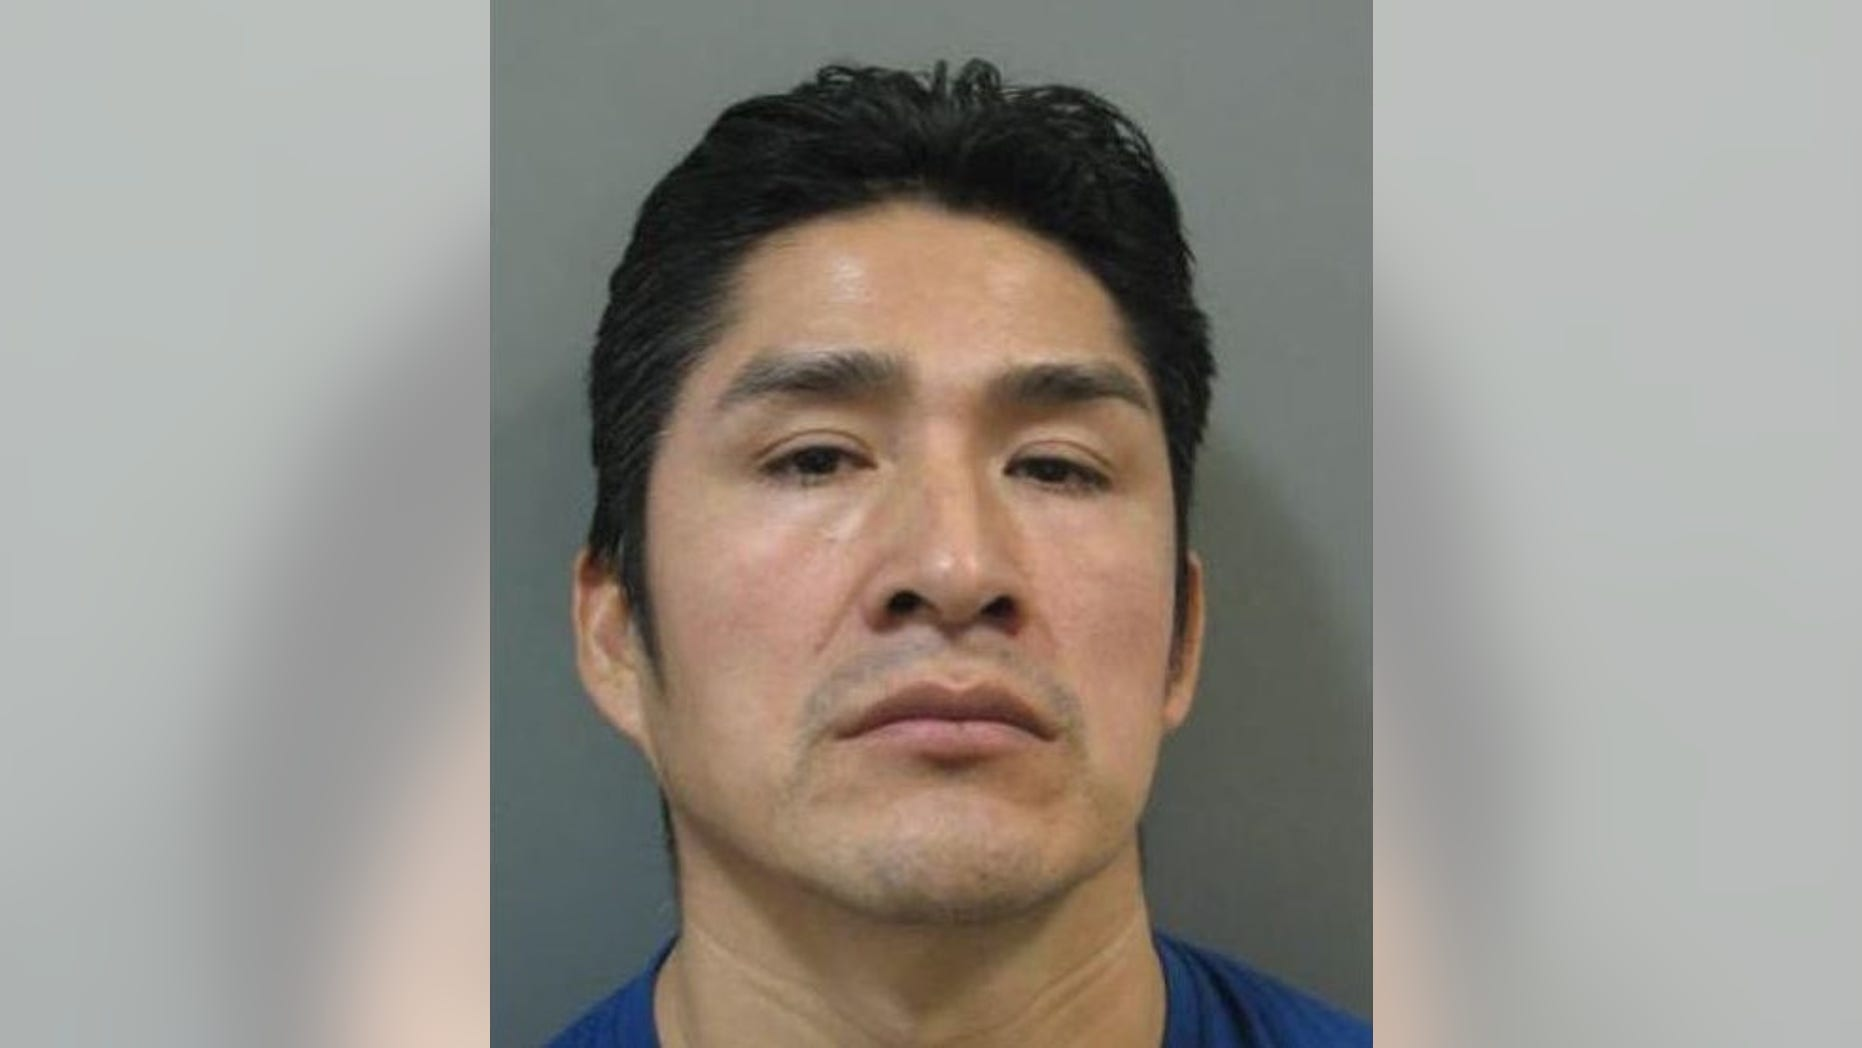 Reynaldo Mora, 41, was arrested in April after he was accused of raping and impregnating a non-verbal 13-year-old girl in Maryland.